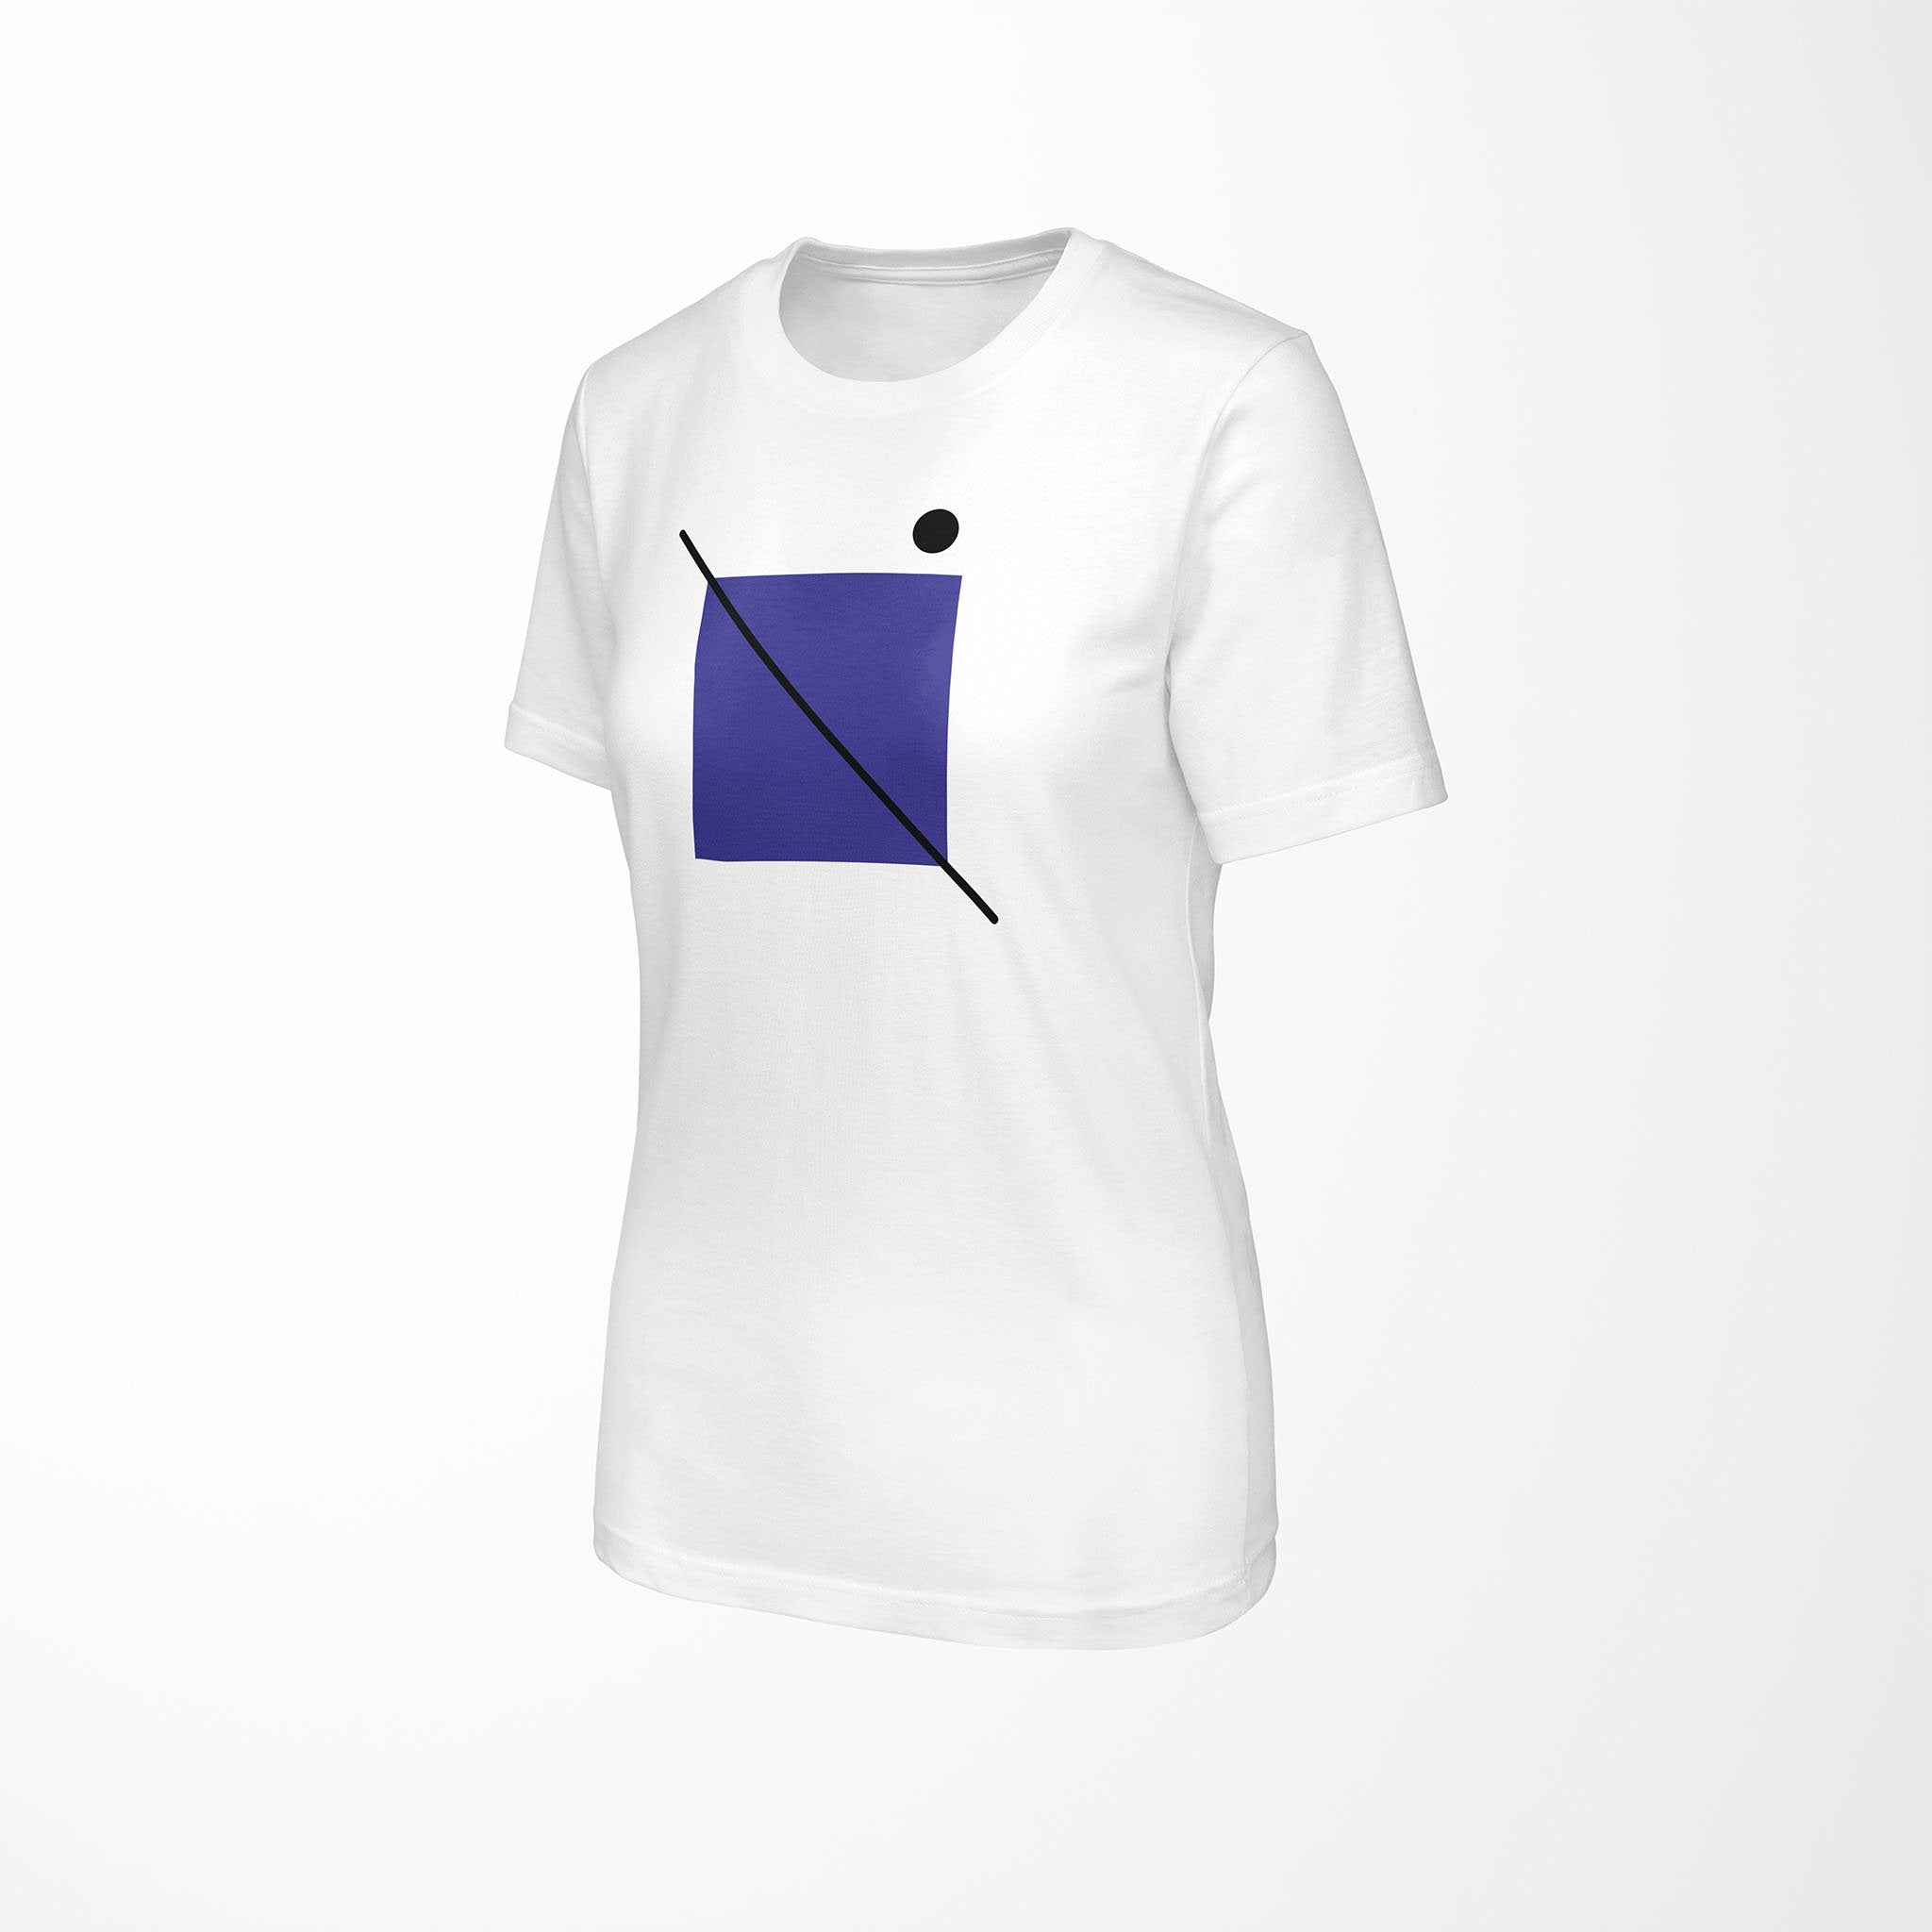 STRIKE Relaxed Fit Women's 100% Cotton White T-Shirt angle view